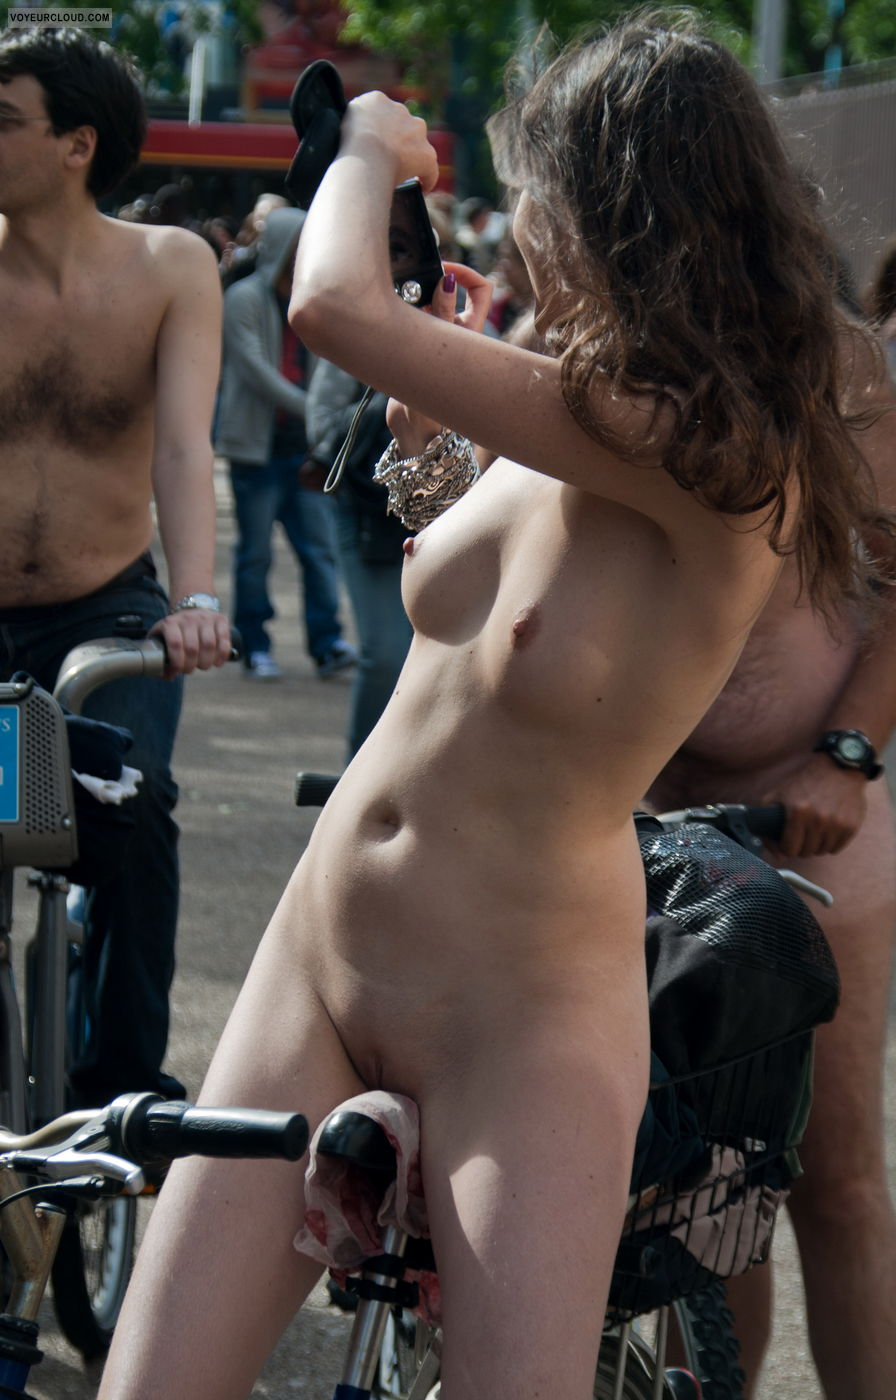 from Chace nude bike ride pussy